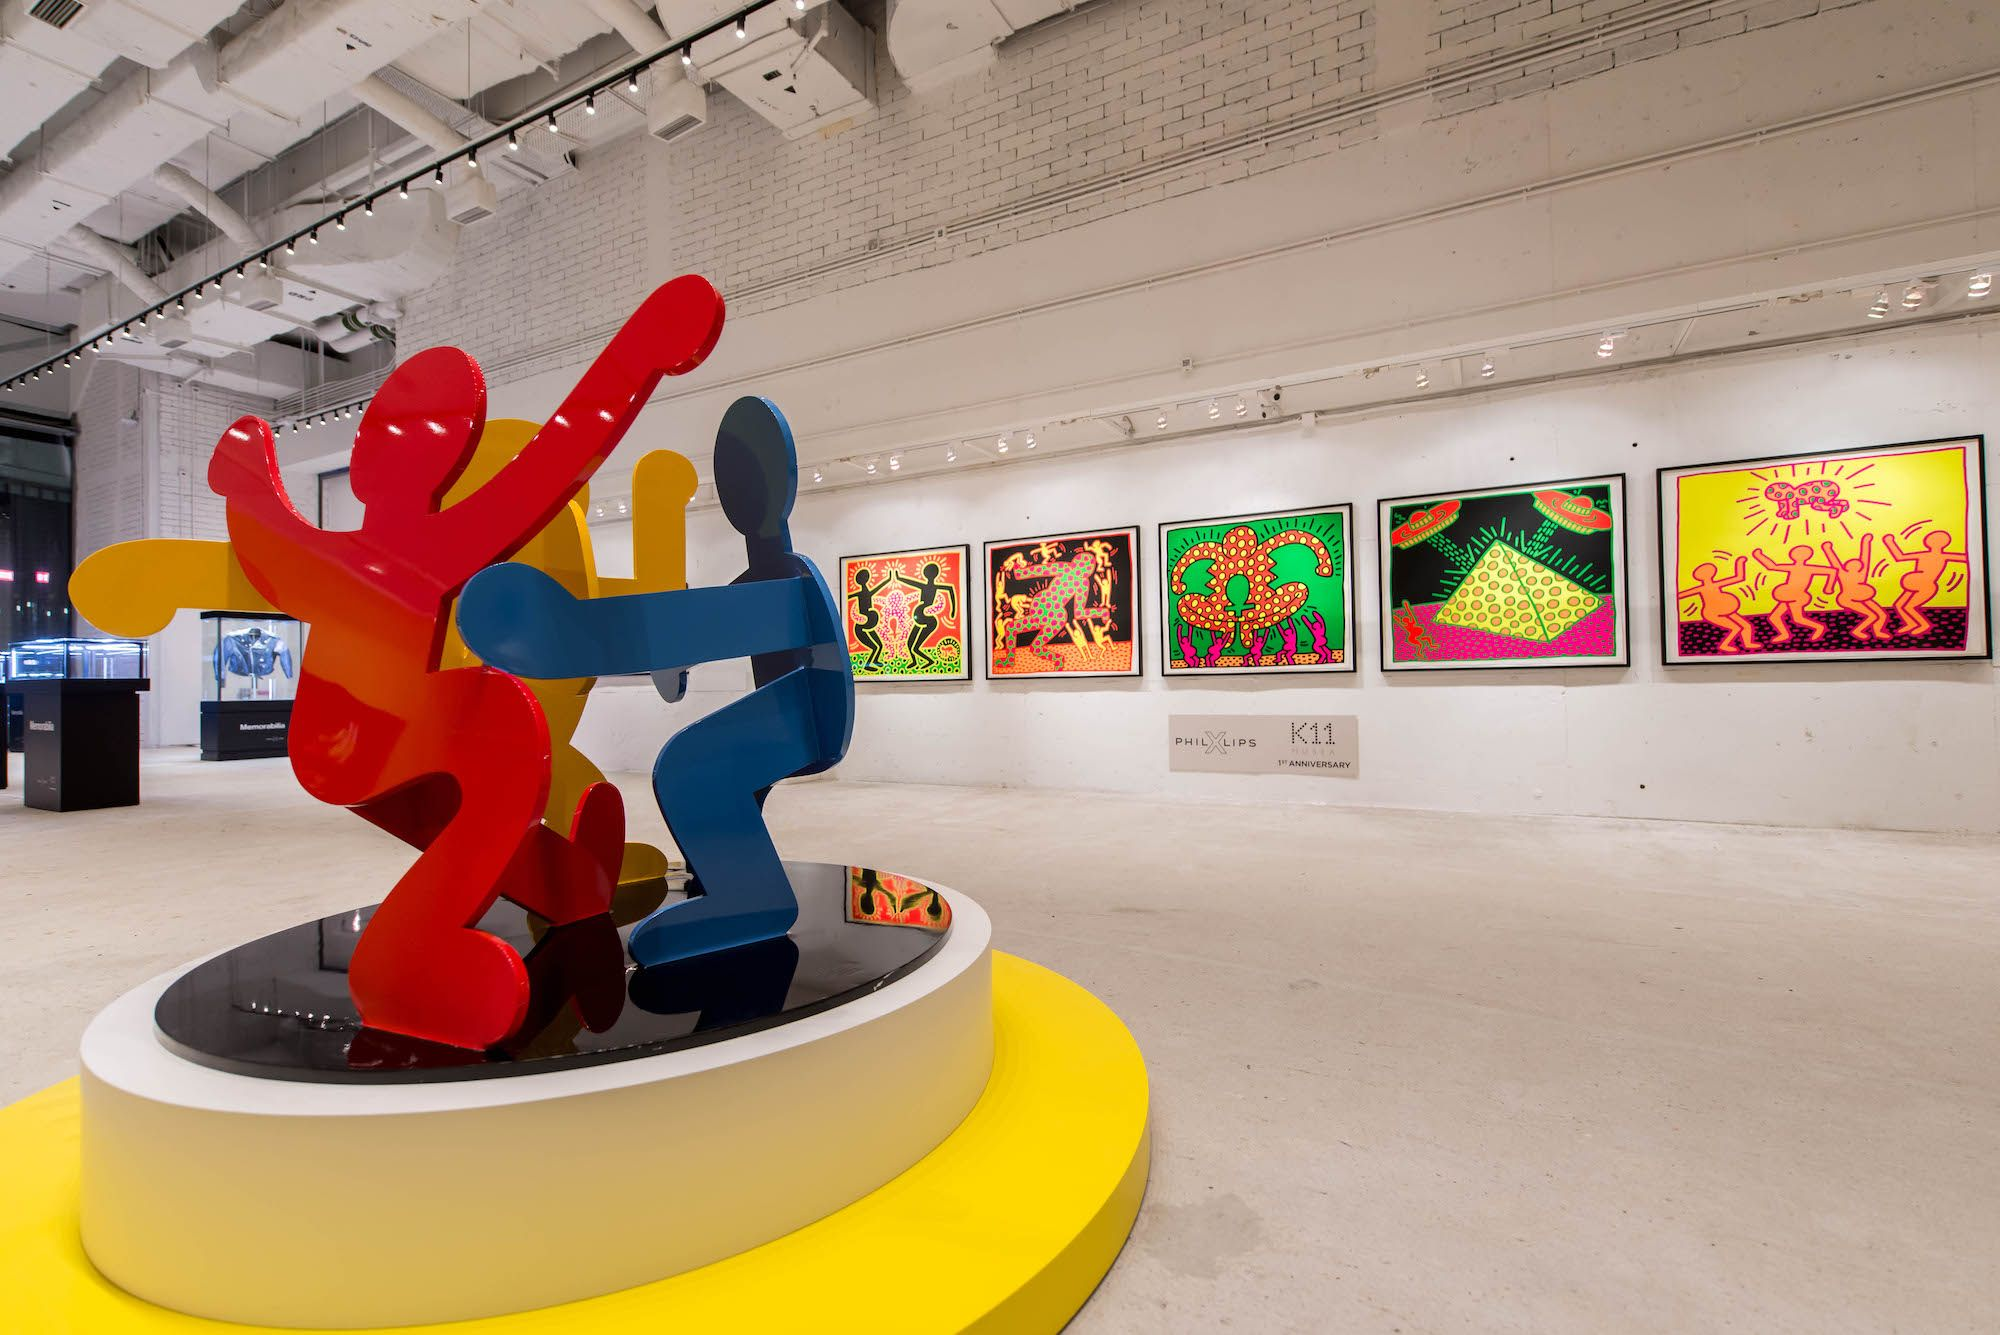 First Look: Phillips Opens A Keith Haring Exhibition At K11 Musea